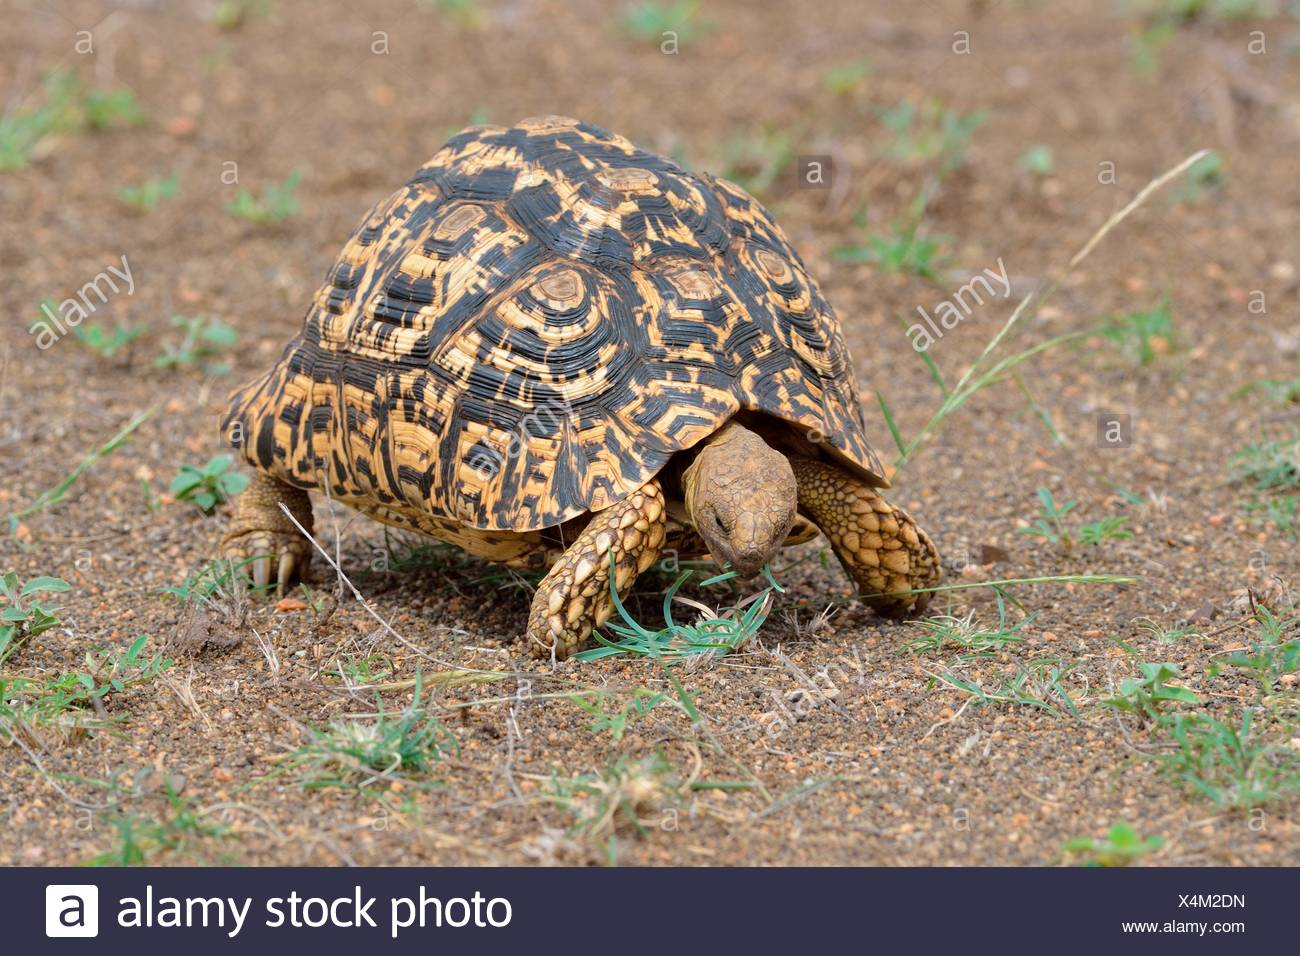 Leopard tortoise (Stigmochelys pardalis), feeding on grass, Kruger National Park, South Africa - Stock Image